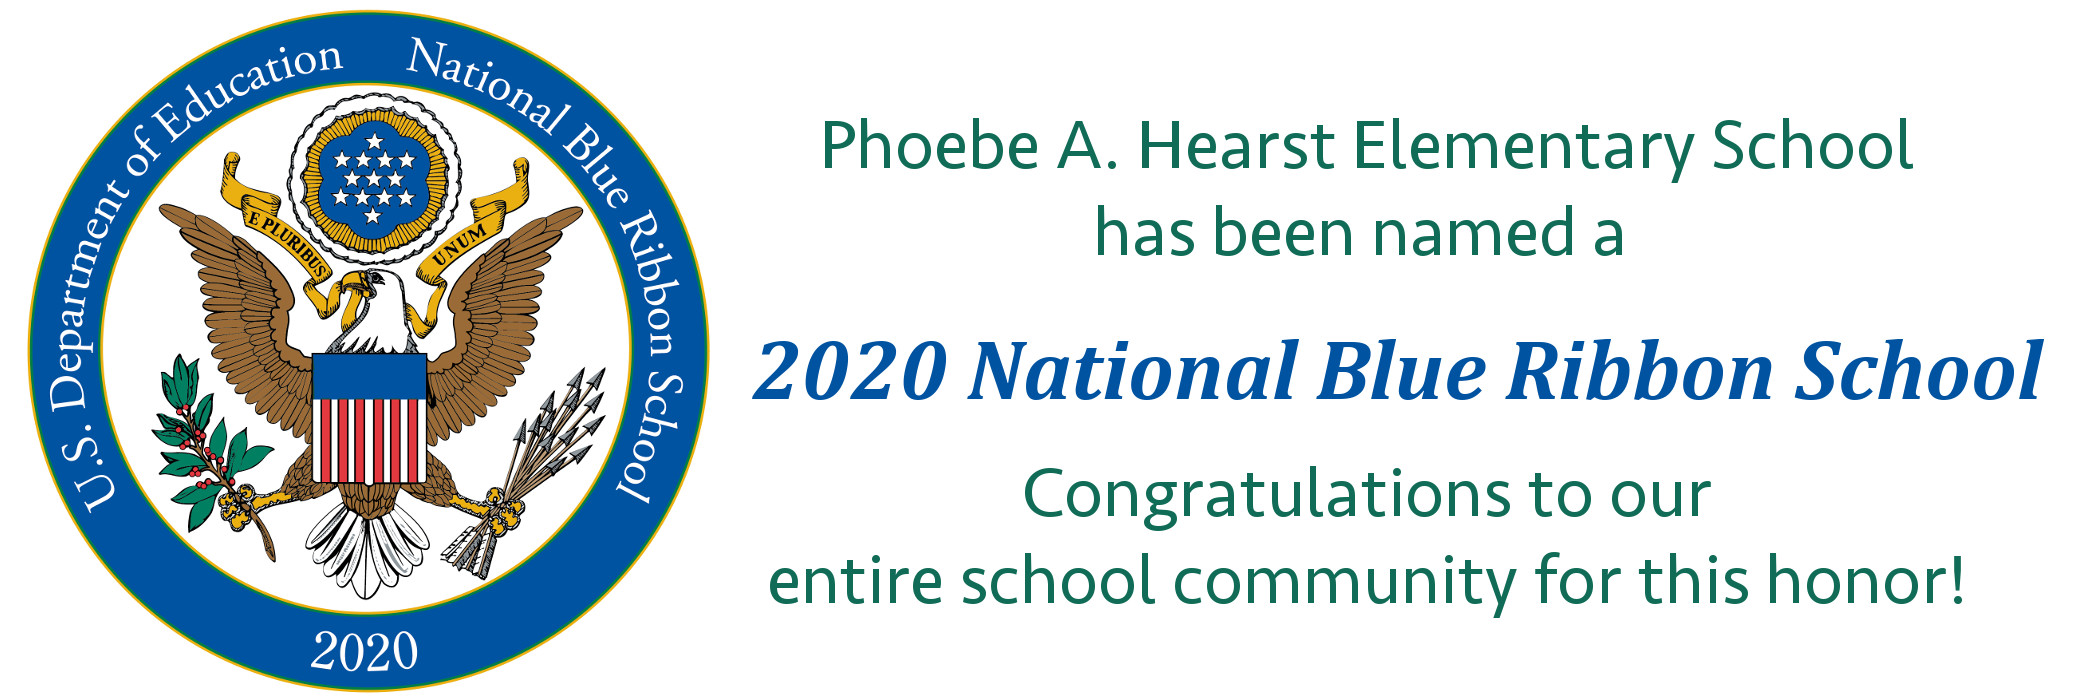 Phoebe A. Hearst - National Blue Ribbon School